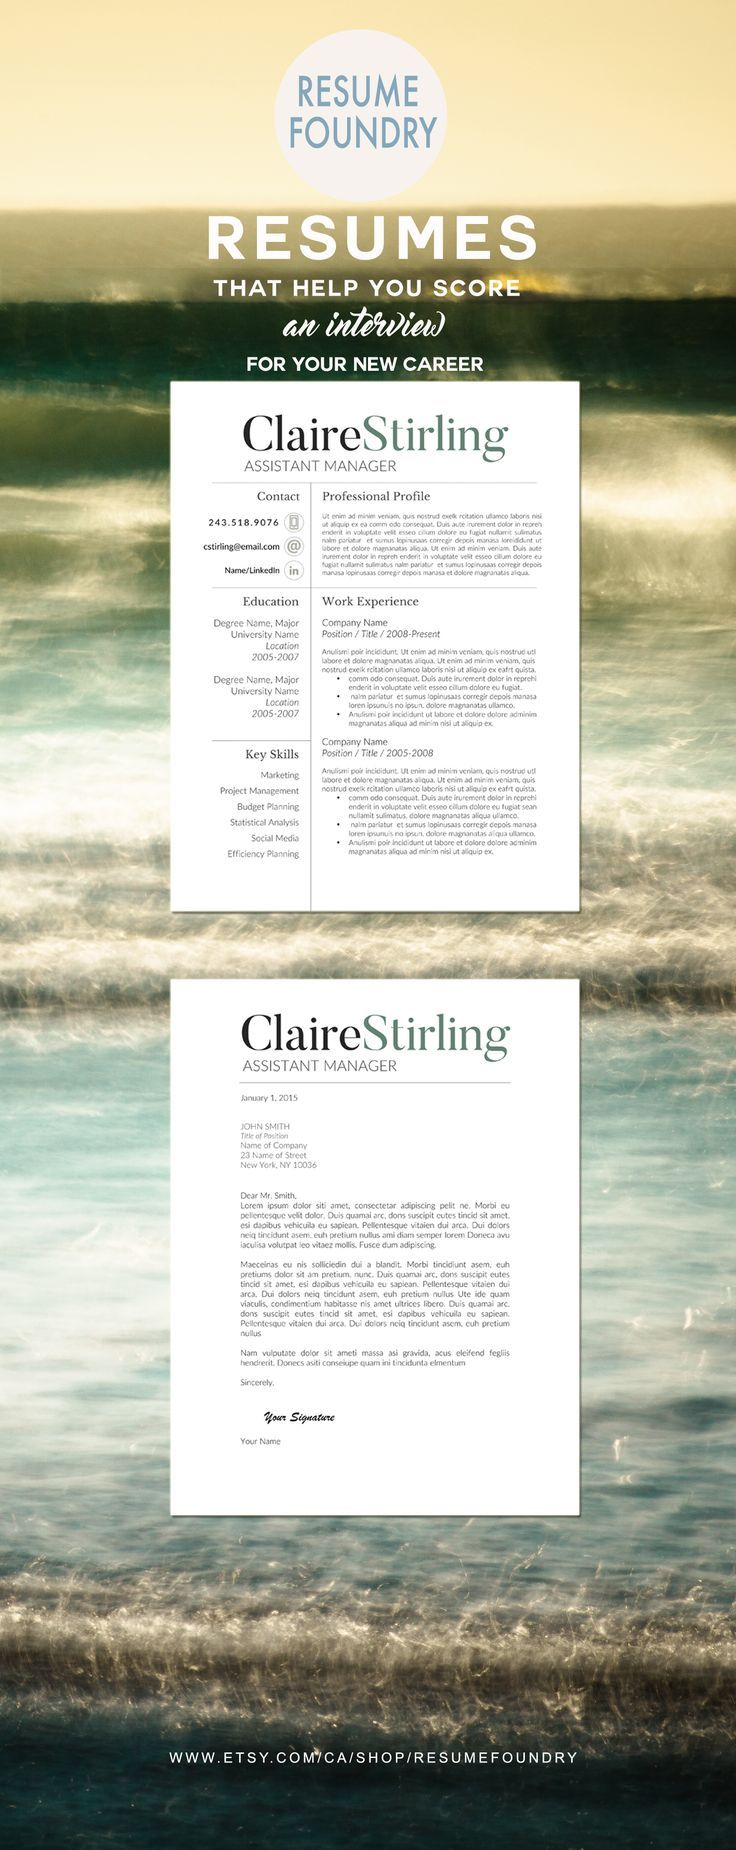 Burnian Online  Blackburn College Simple Resume An Introductory